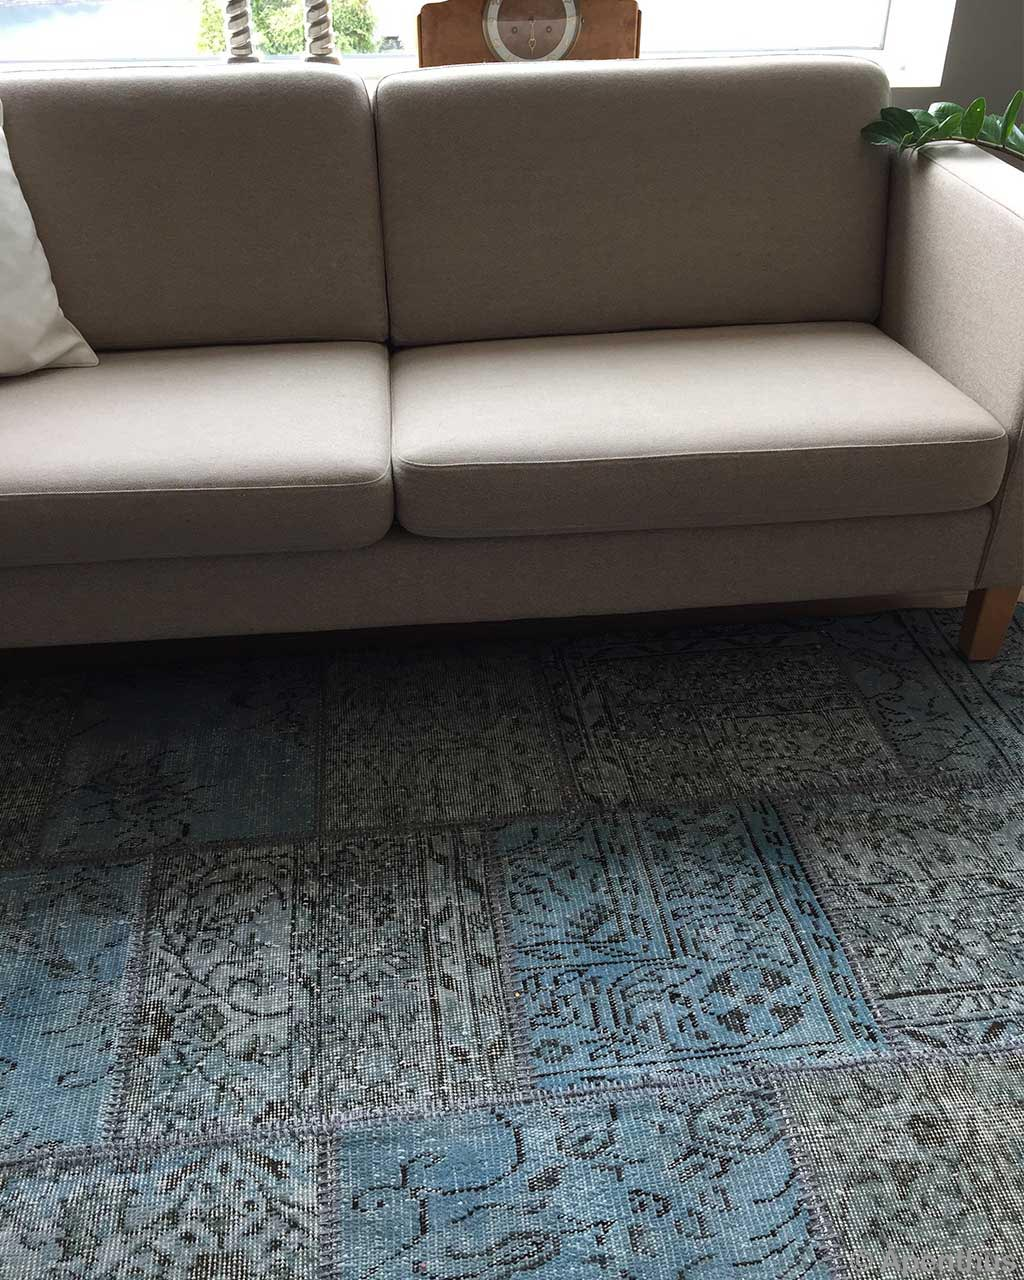 sofa from turkey modern cyan small rug